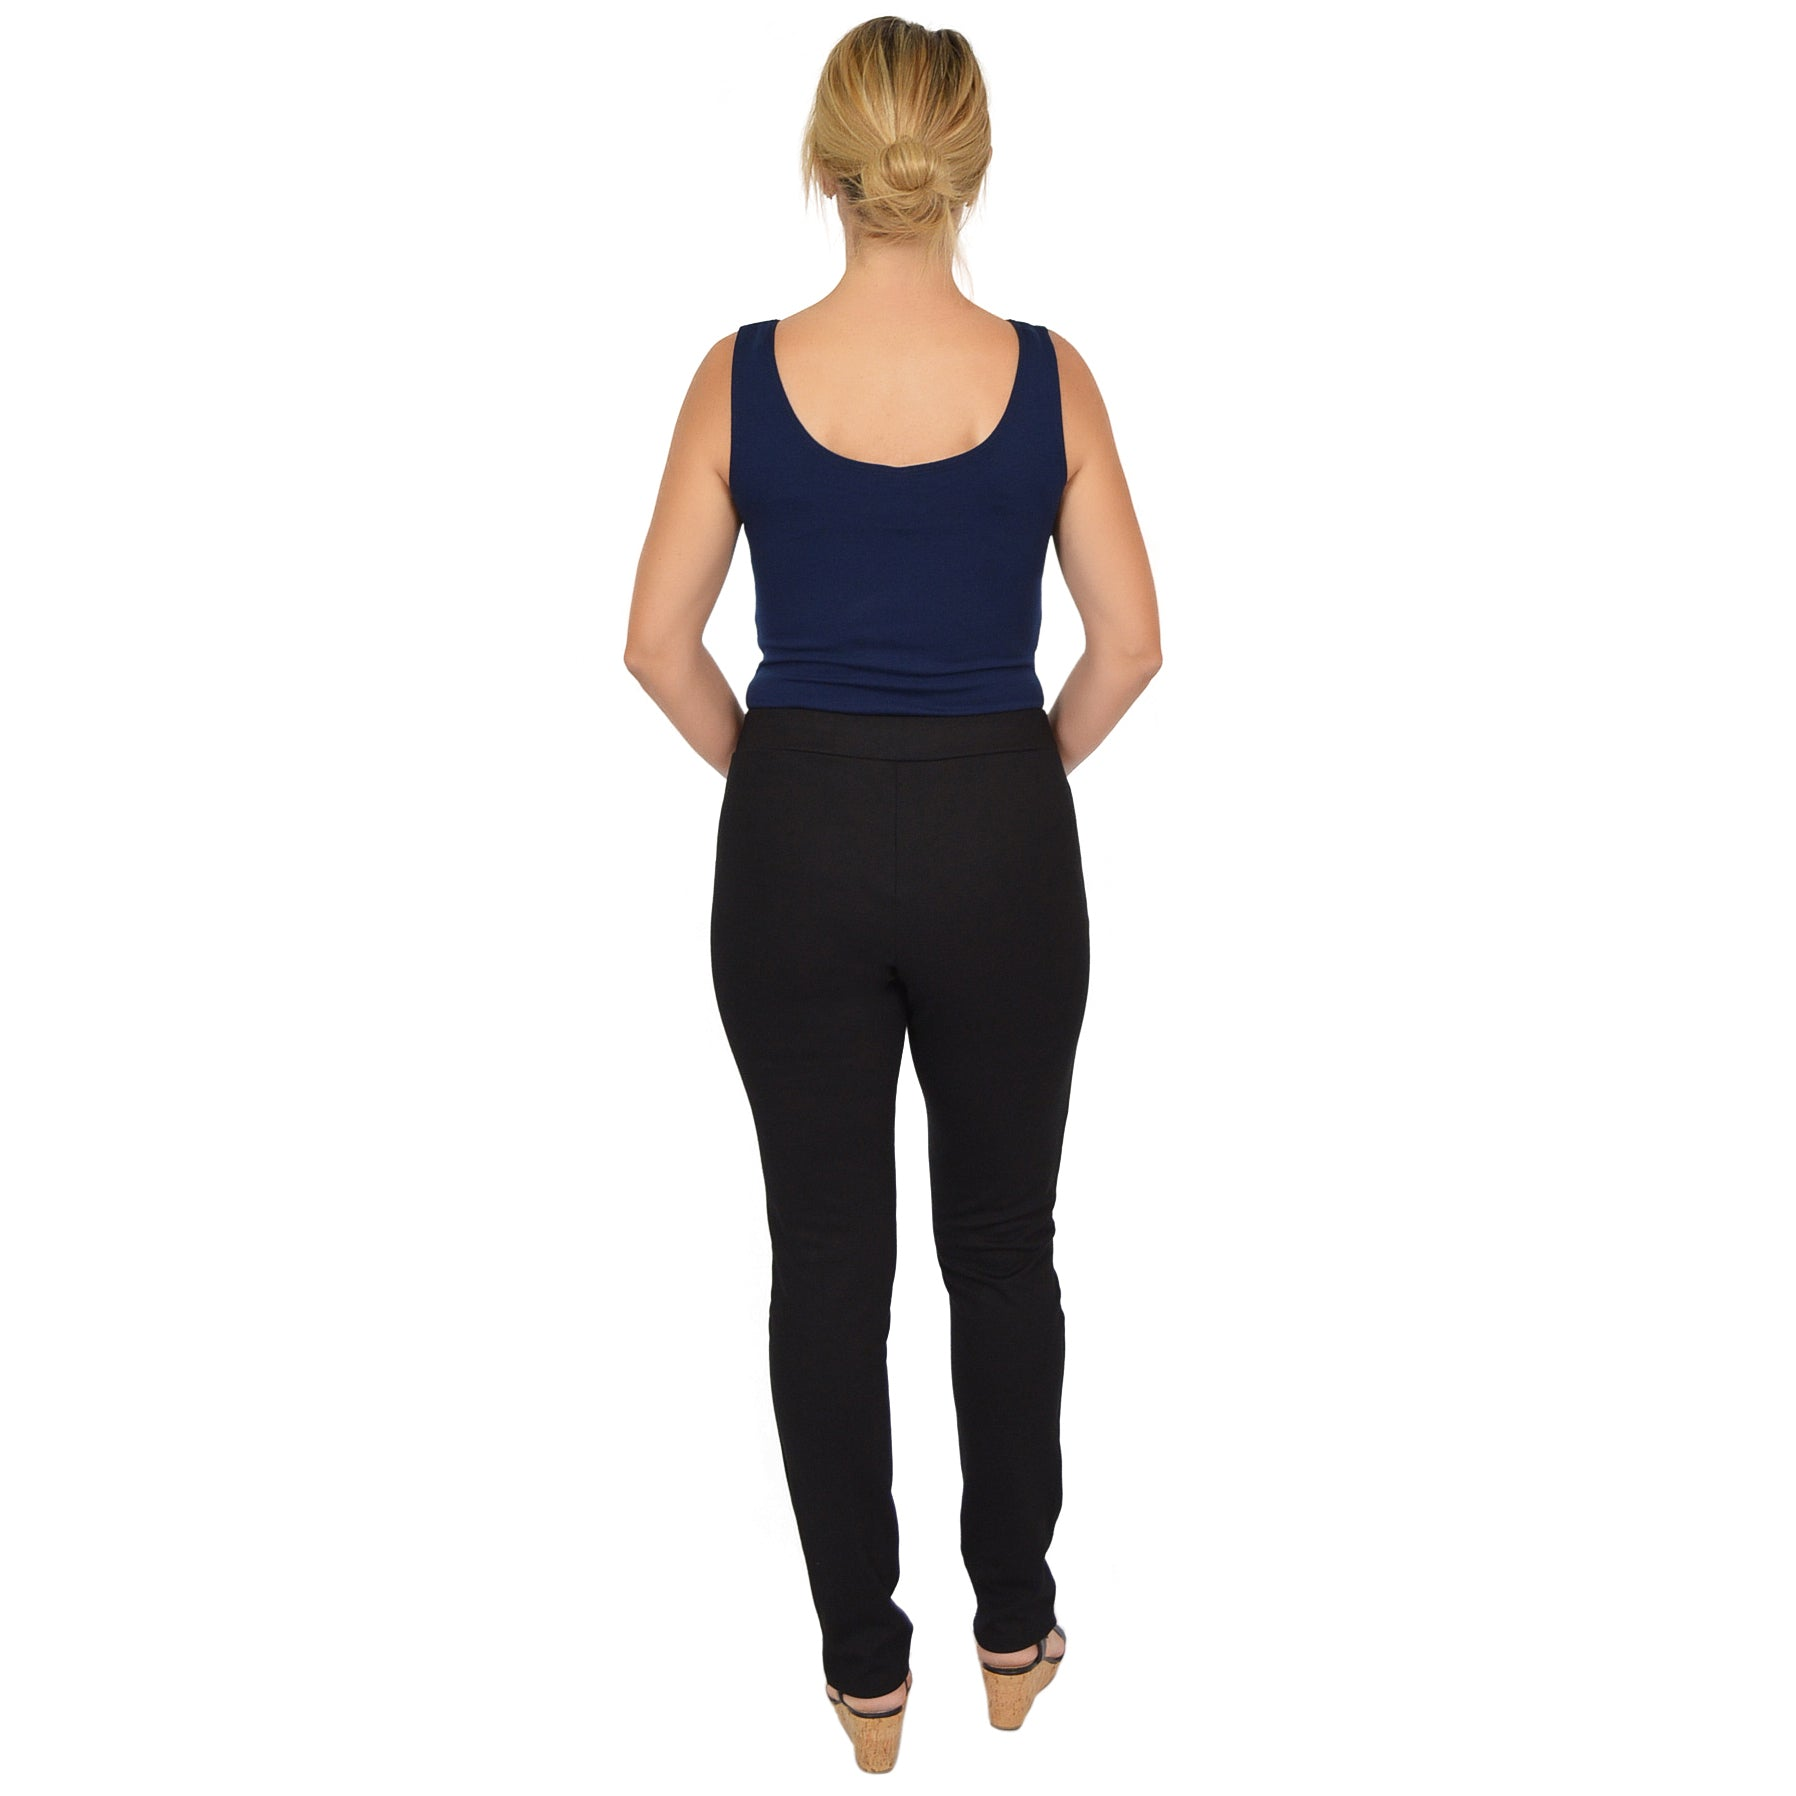 Women's Comfortable Office Pants